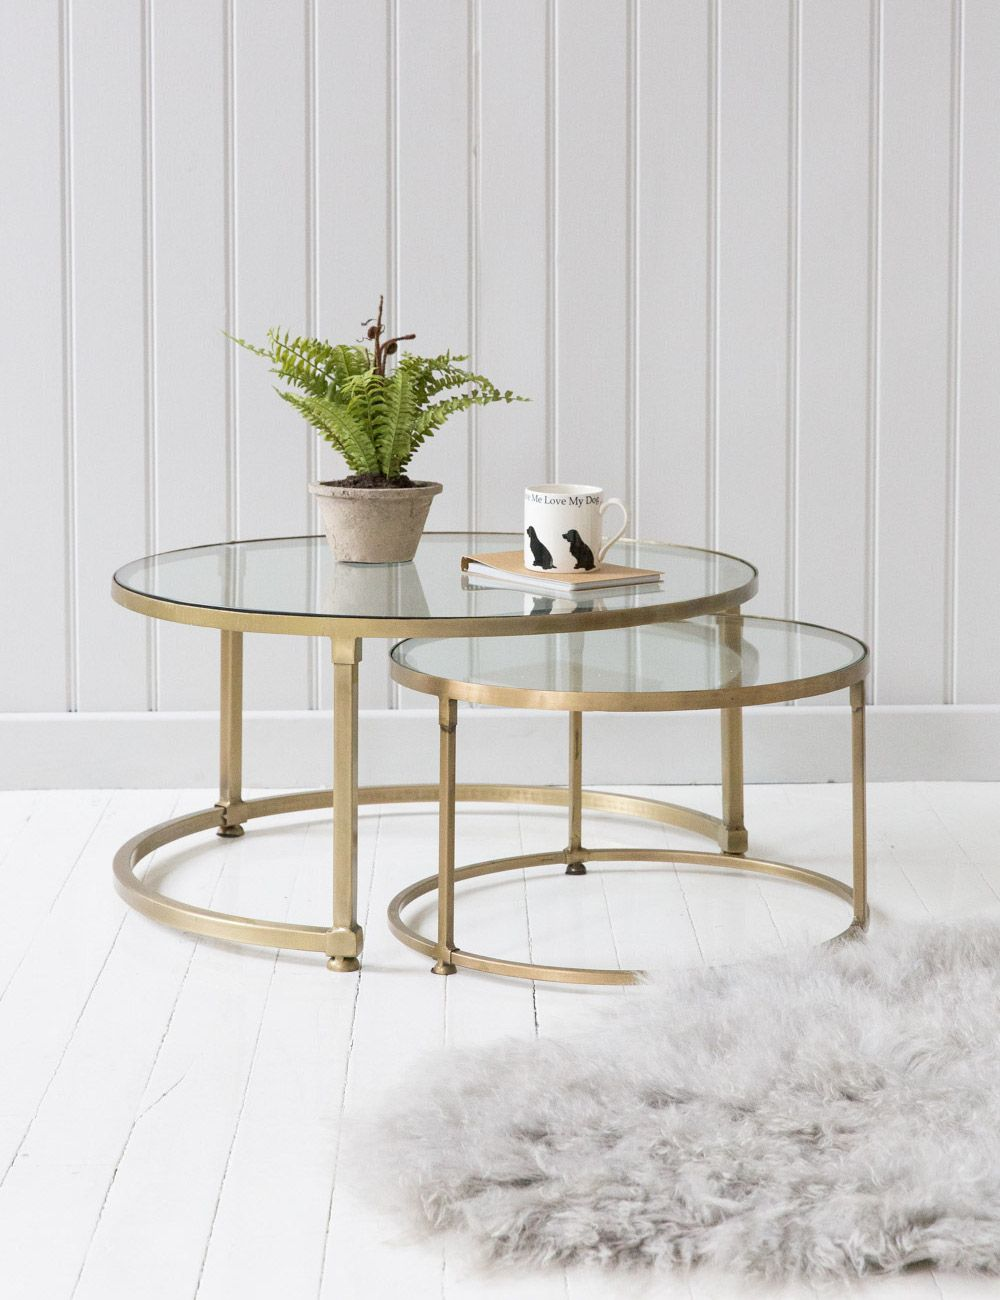 glass coffee table designs. stacking round glass coffee table set more designs pinterest & Glass Coffee Table Designs. Stacking Round Glass Coffee Table Set ...